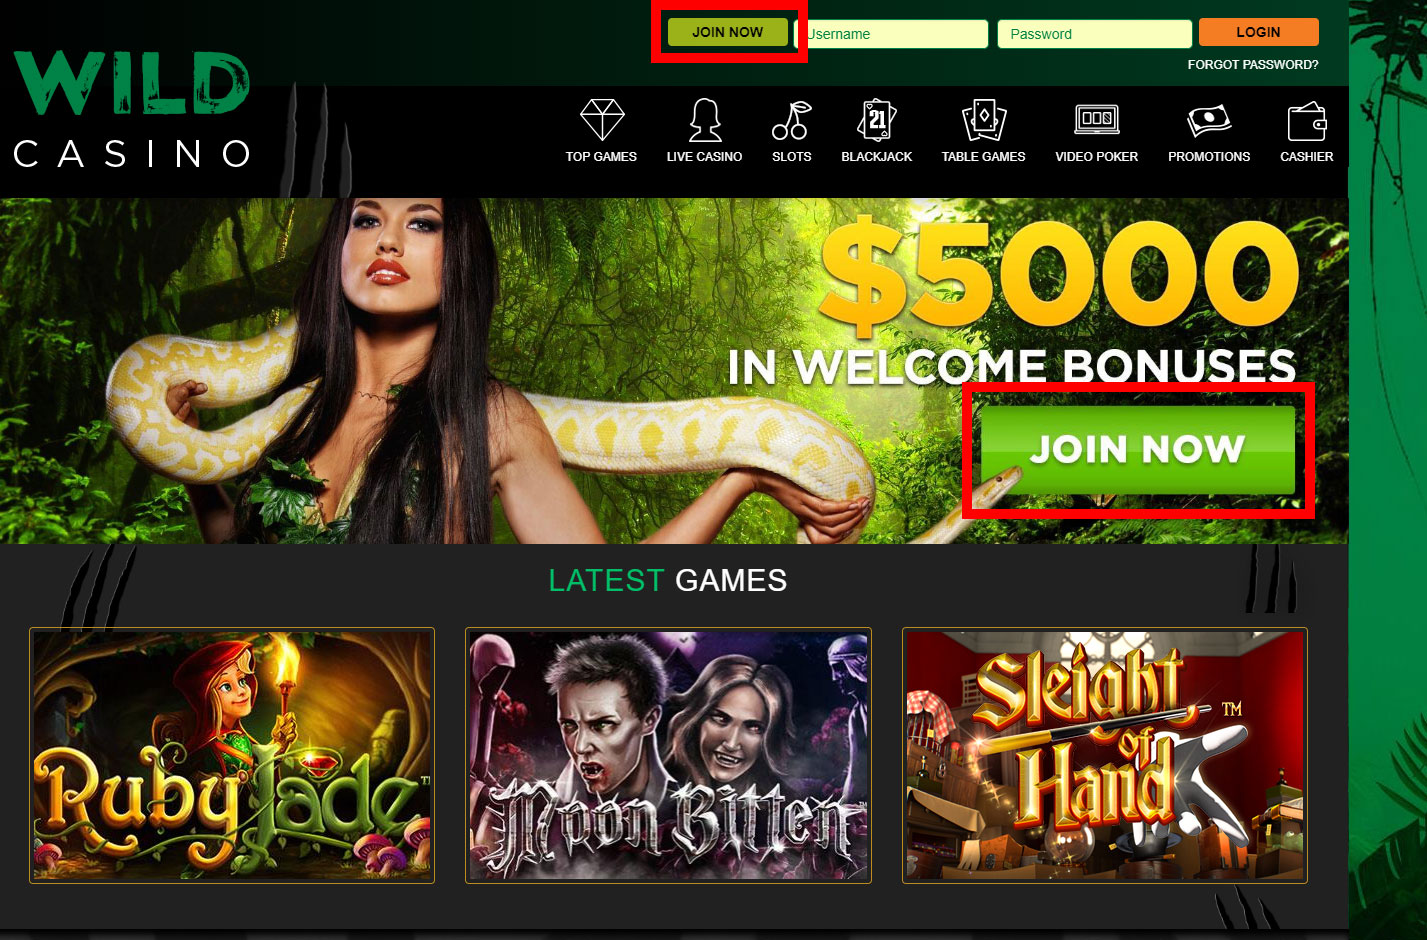 Register for a Free Account at Wild Casino